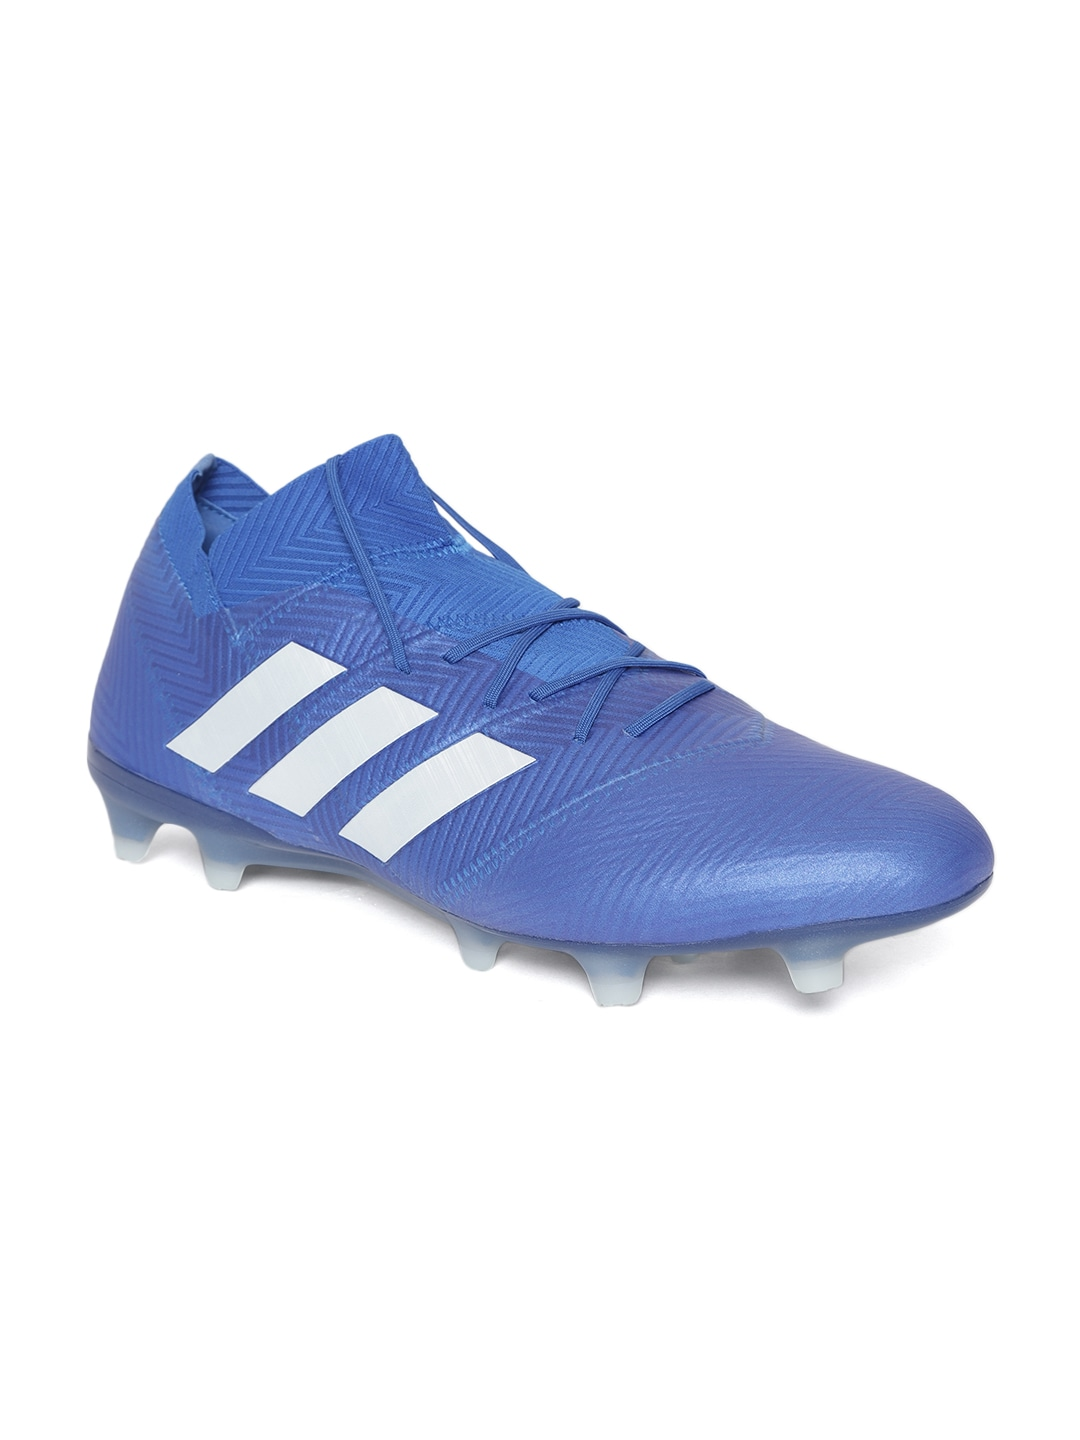 Adidas Sports Shoes - Buy Addidas Sports Shoes Online  9f37bd442